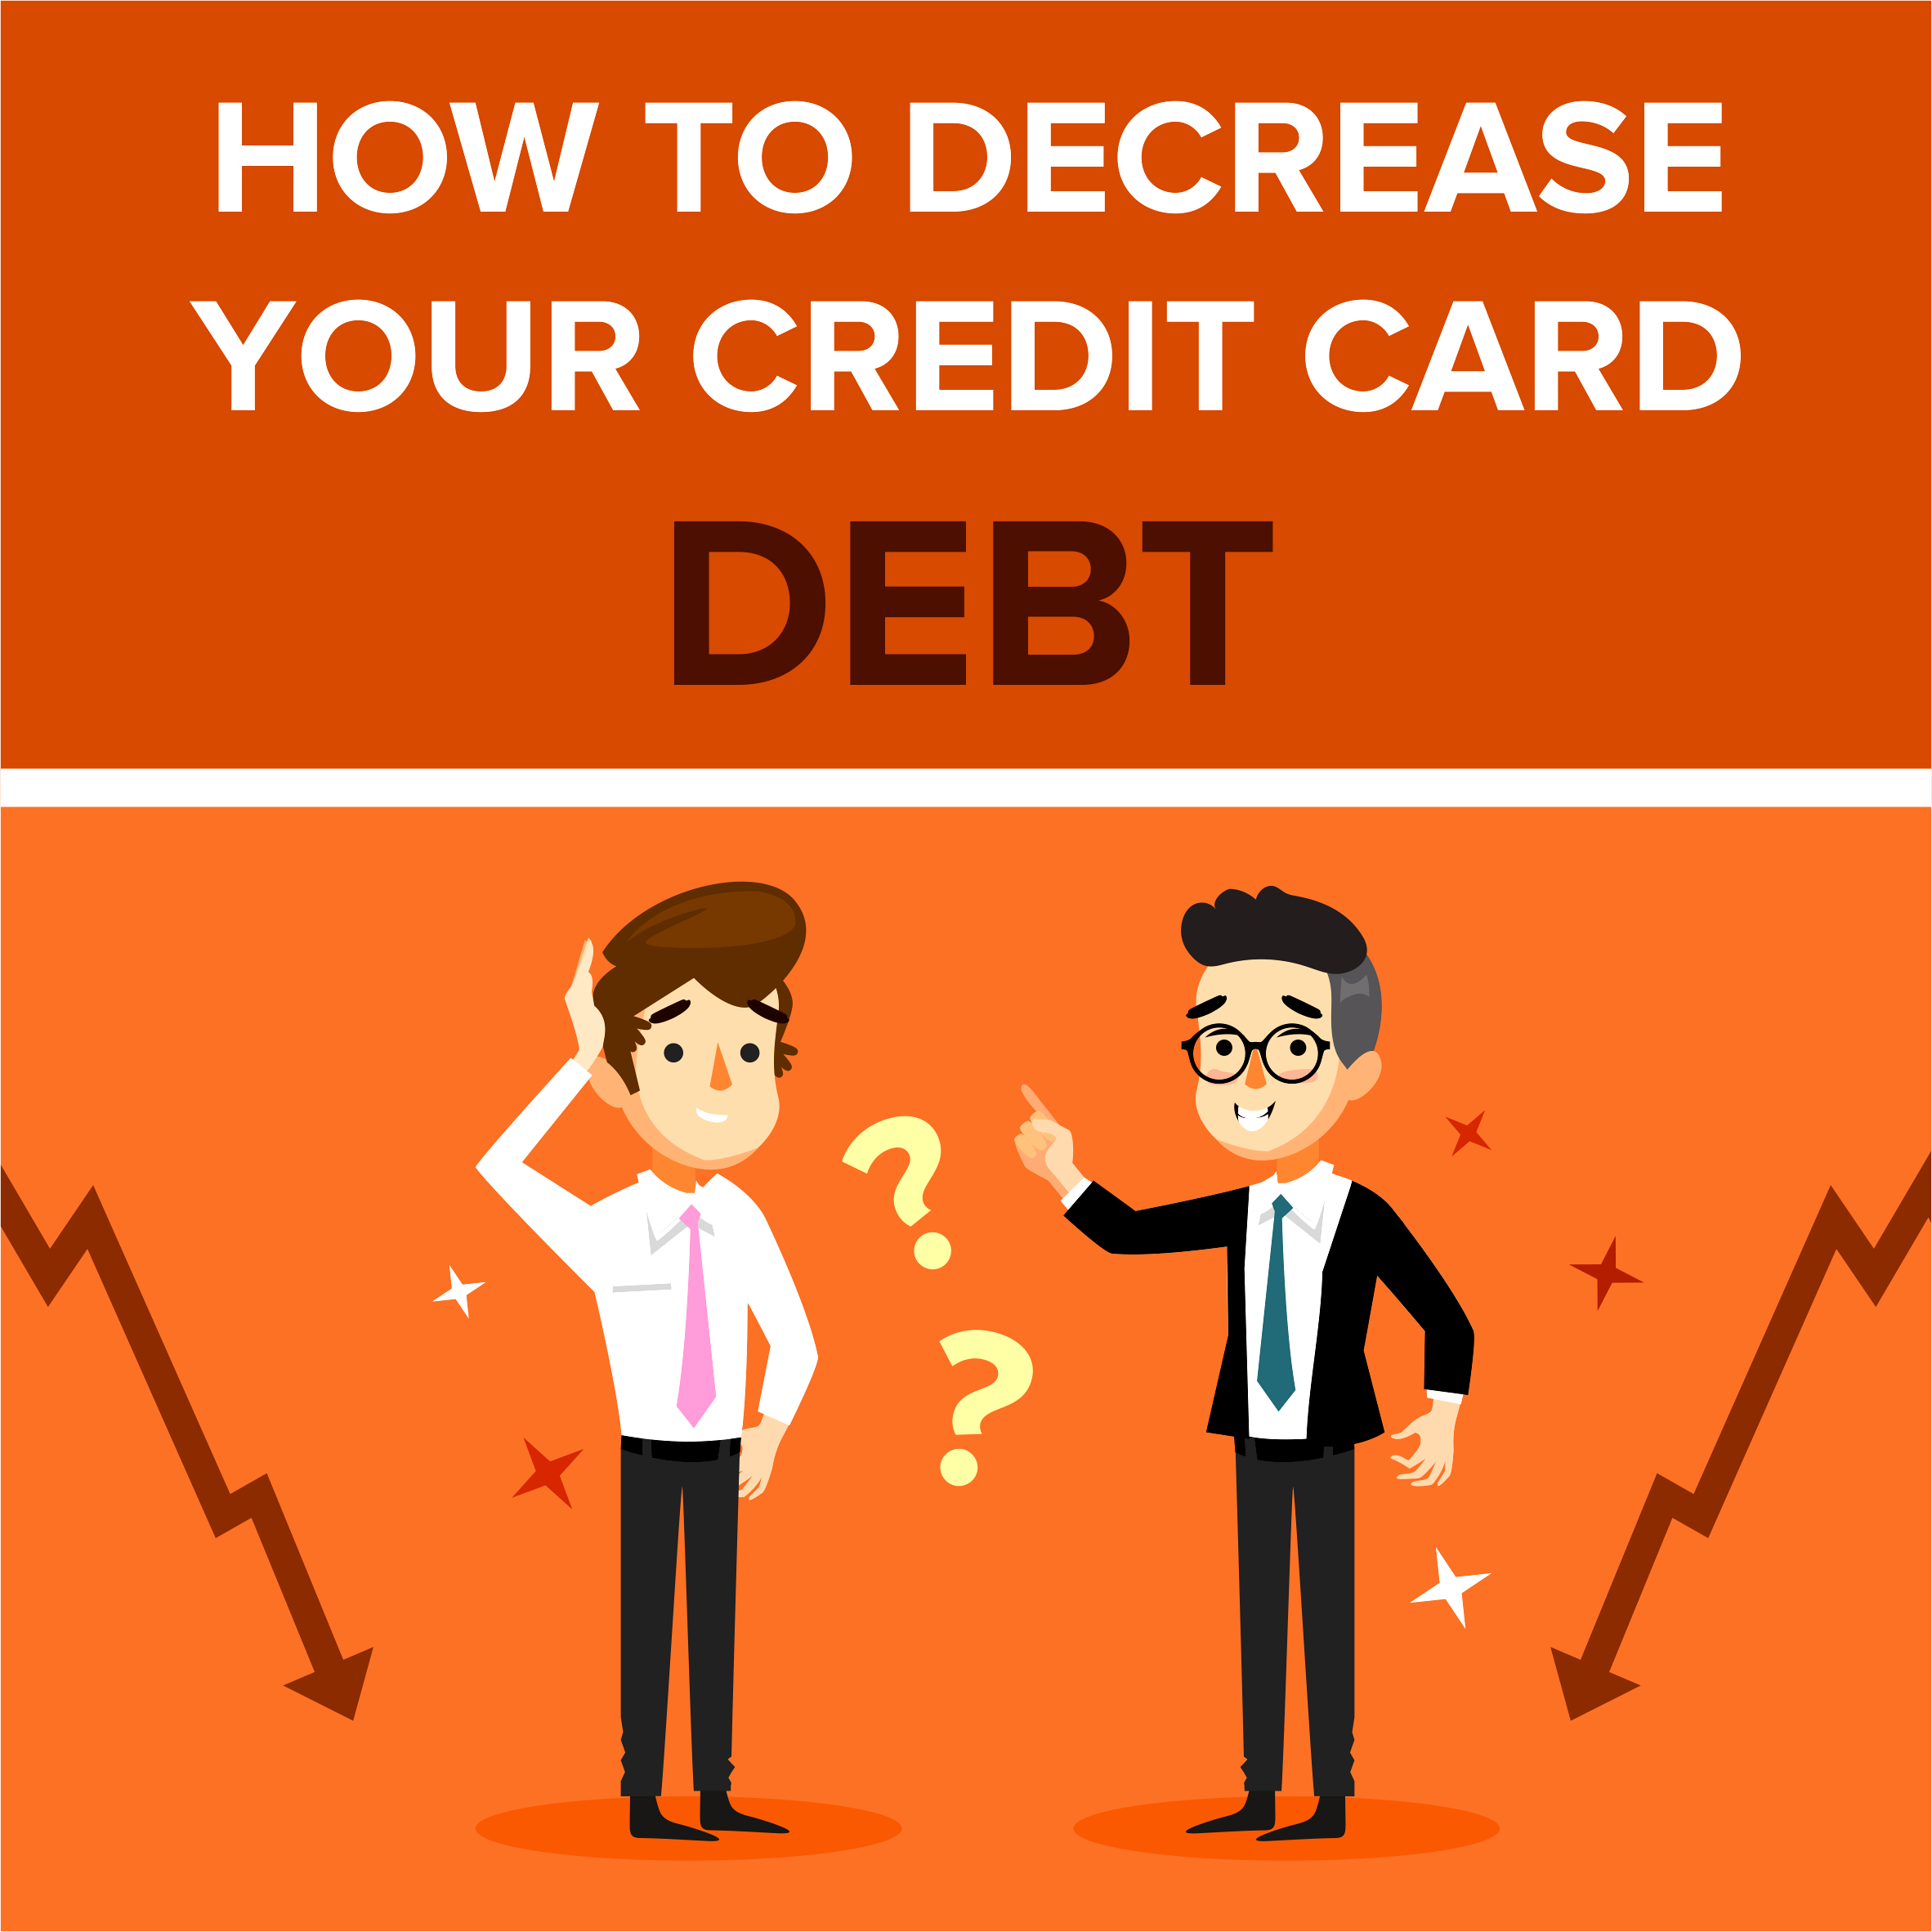 How to Decrease Your Credit Card Debt